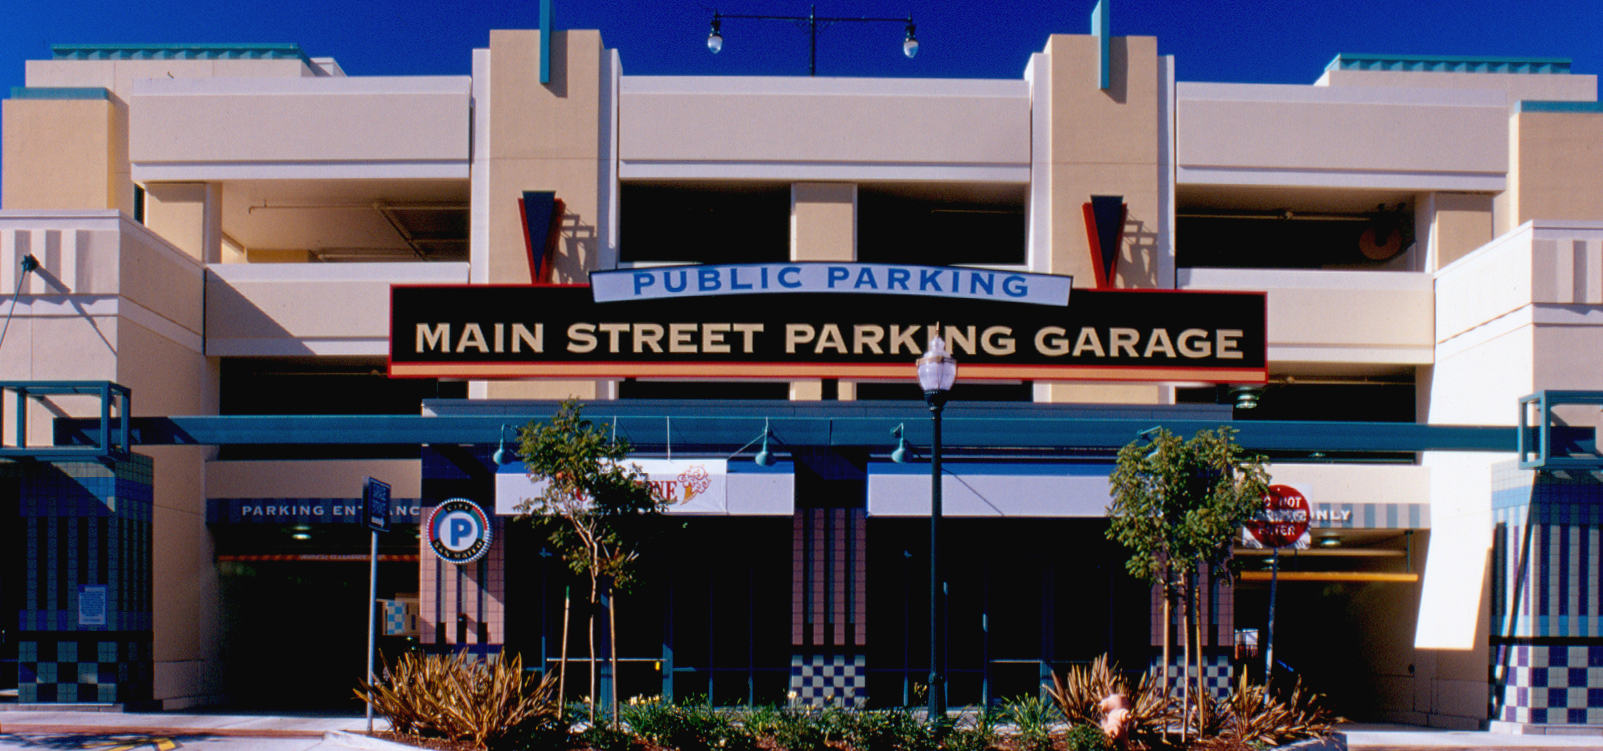 Main Street Parking Structure